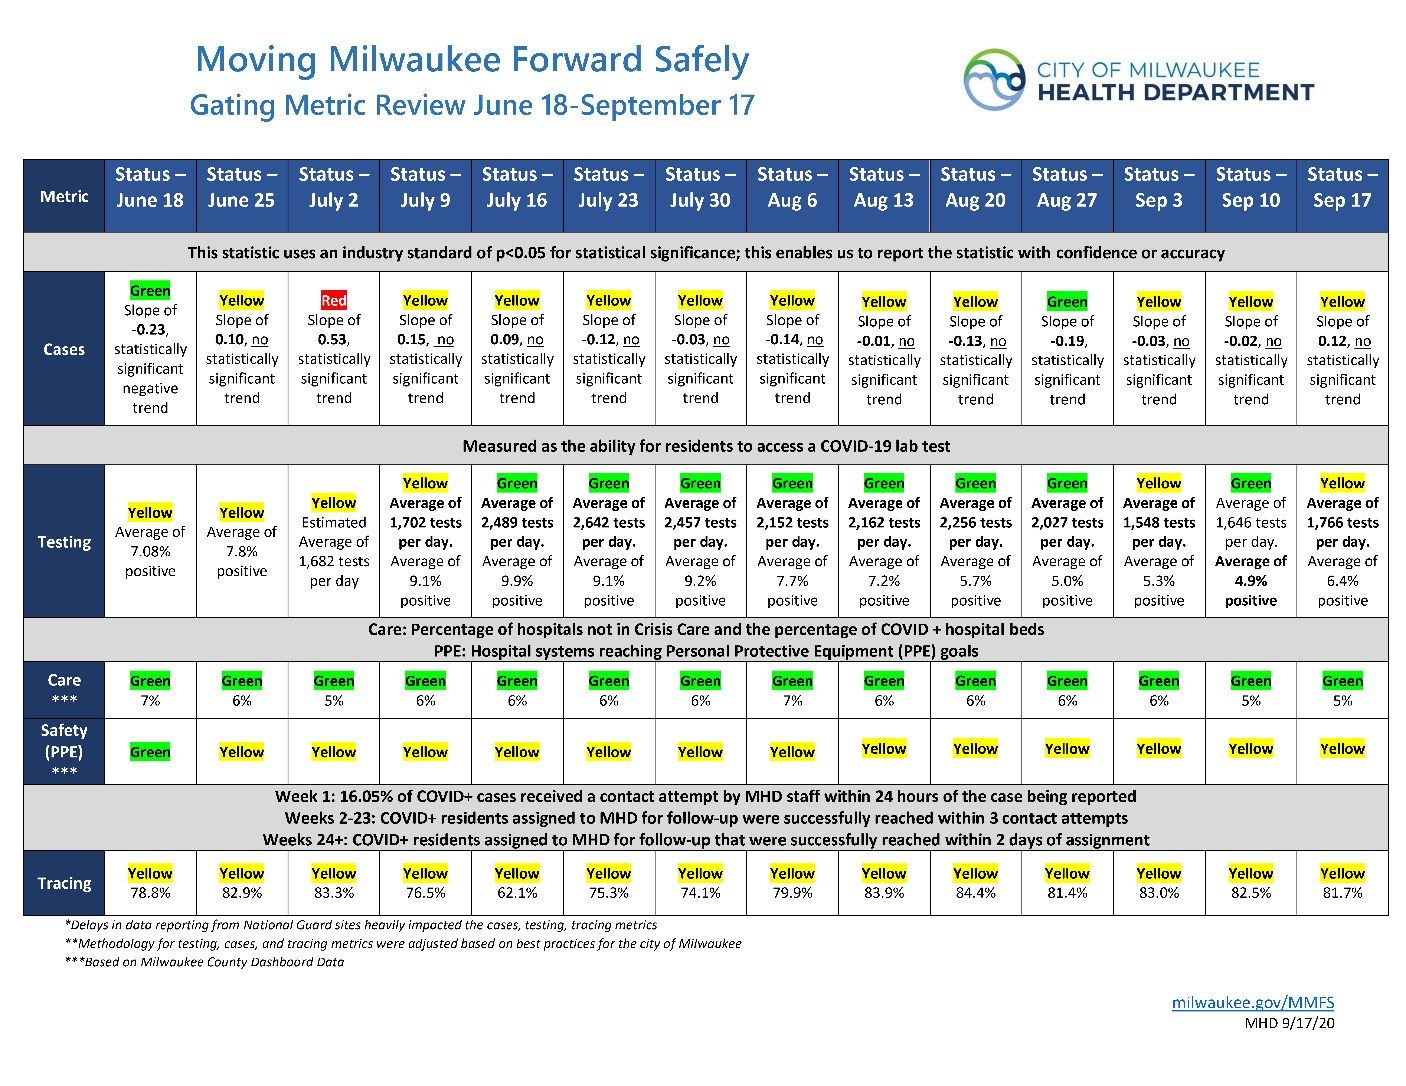 The City of Milwaukee Phase 4.1 Order Update